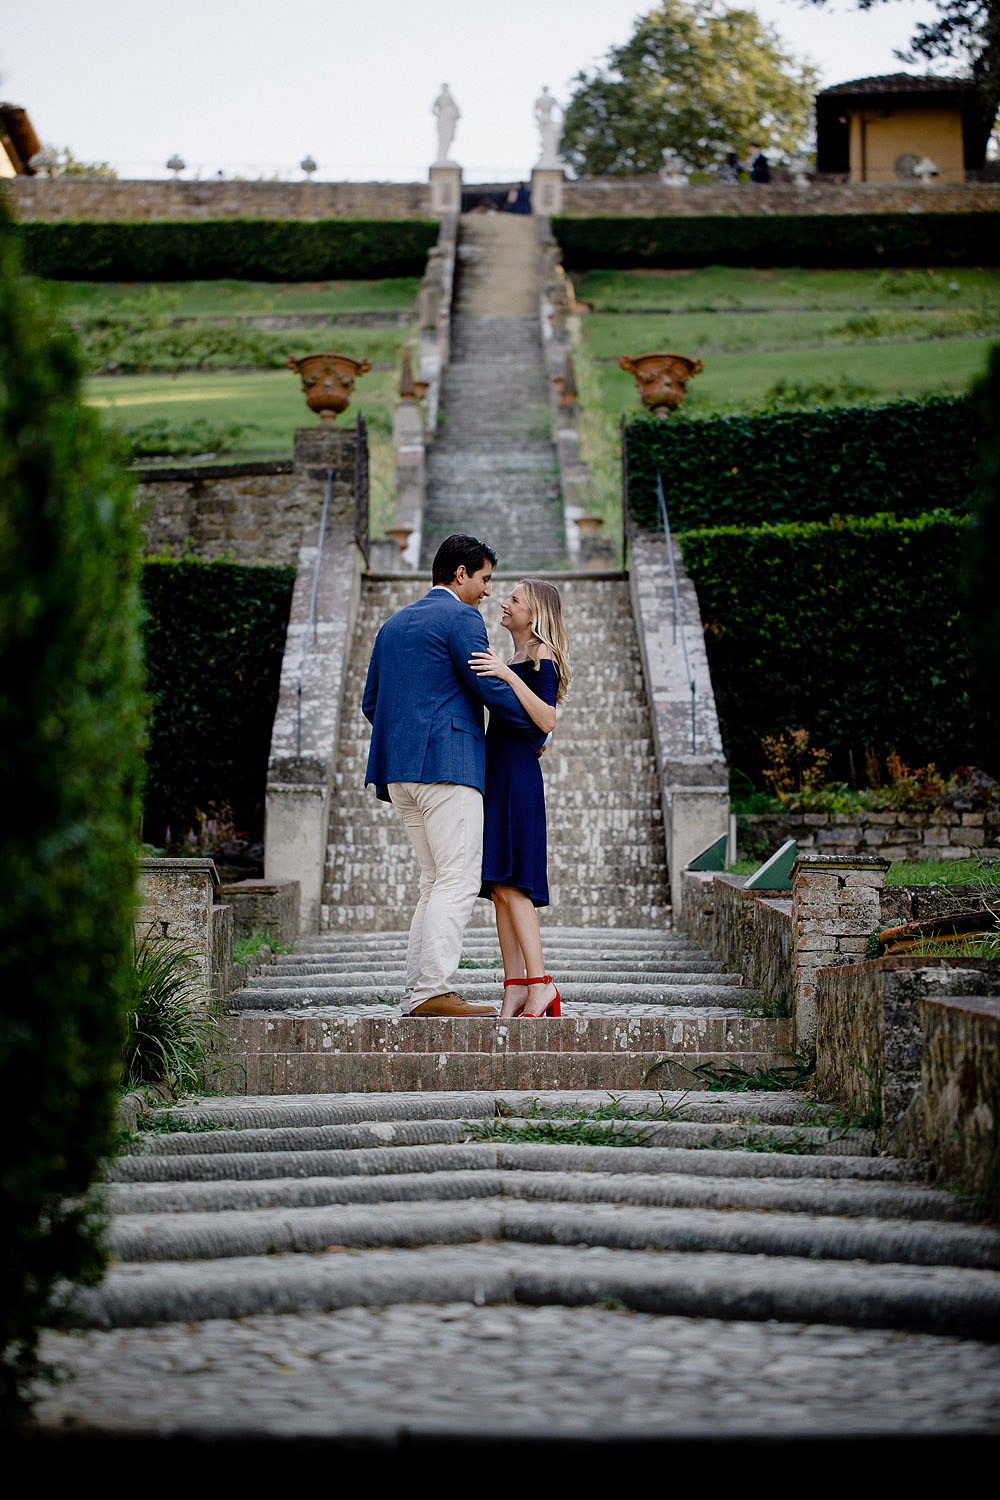 VILLA BARDINI COUPLE PORTRAIT IN FLORENCE CITY OF LOVE :: Luxury wedding photography - 6